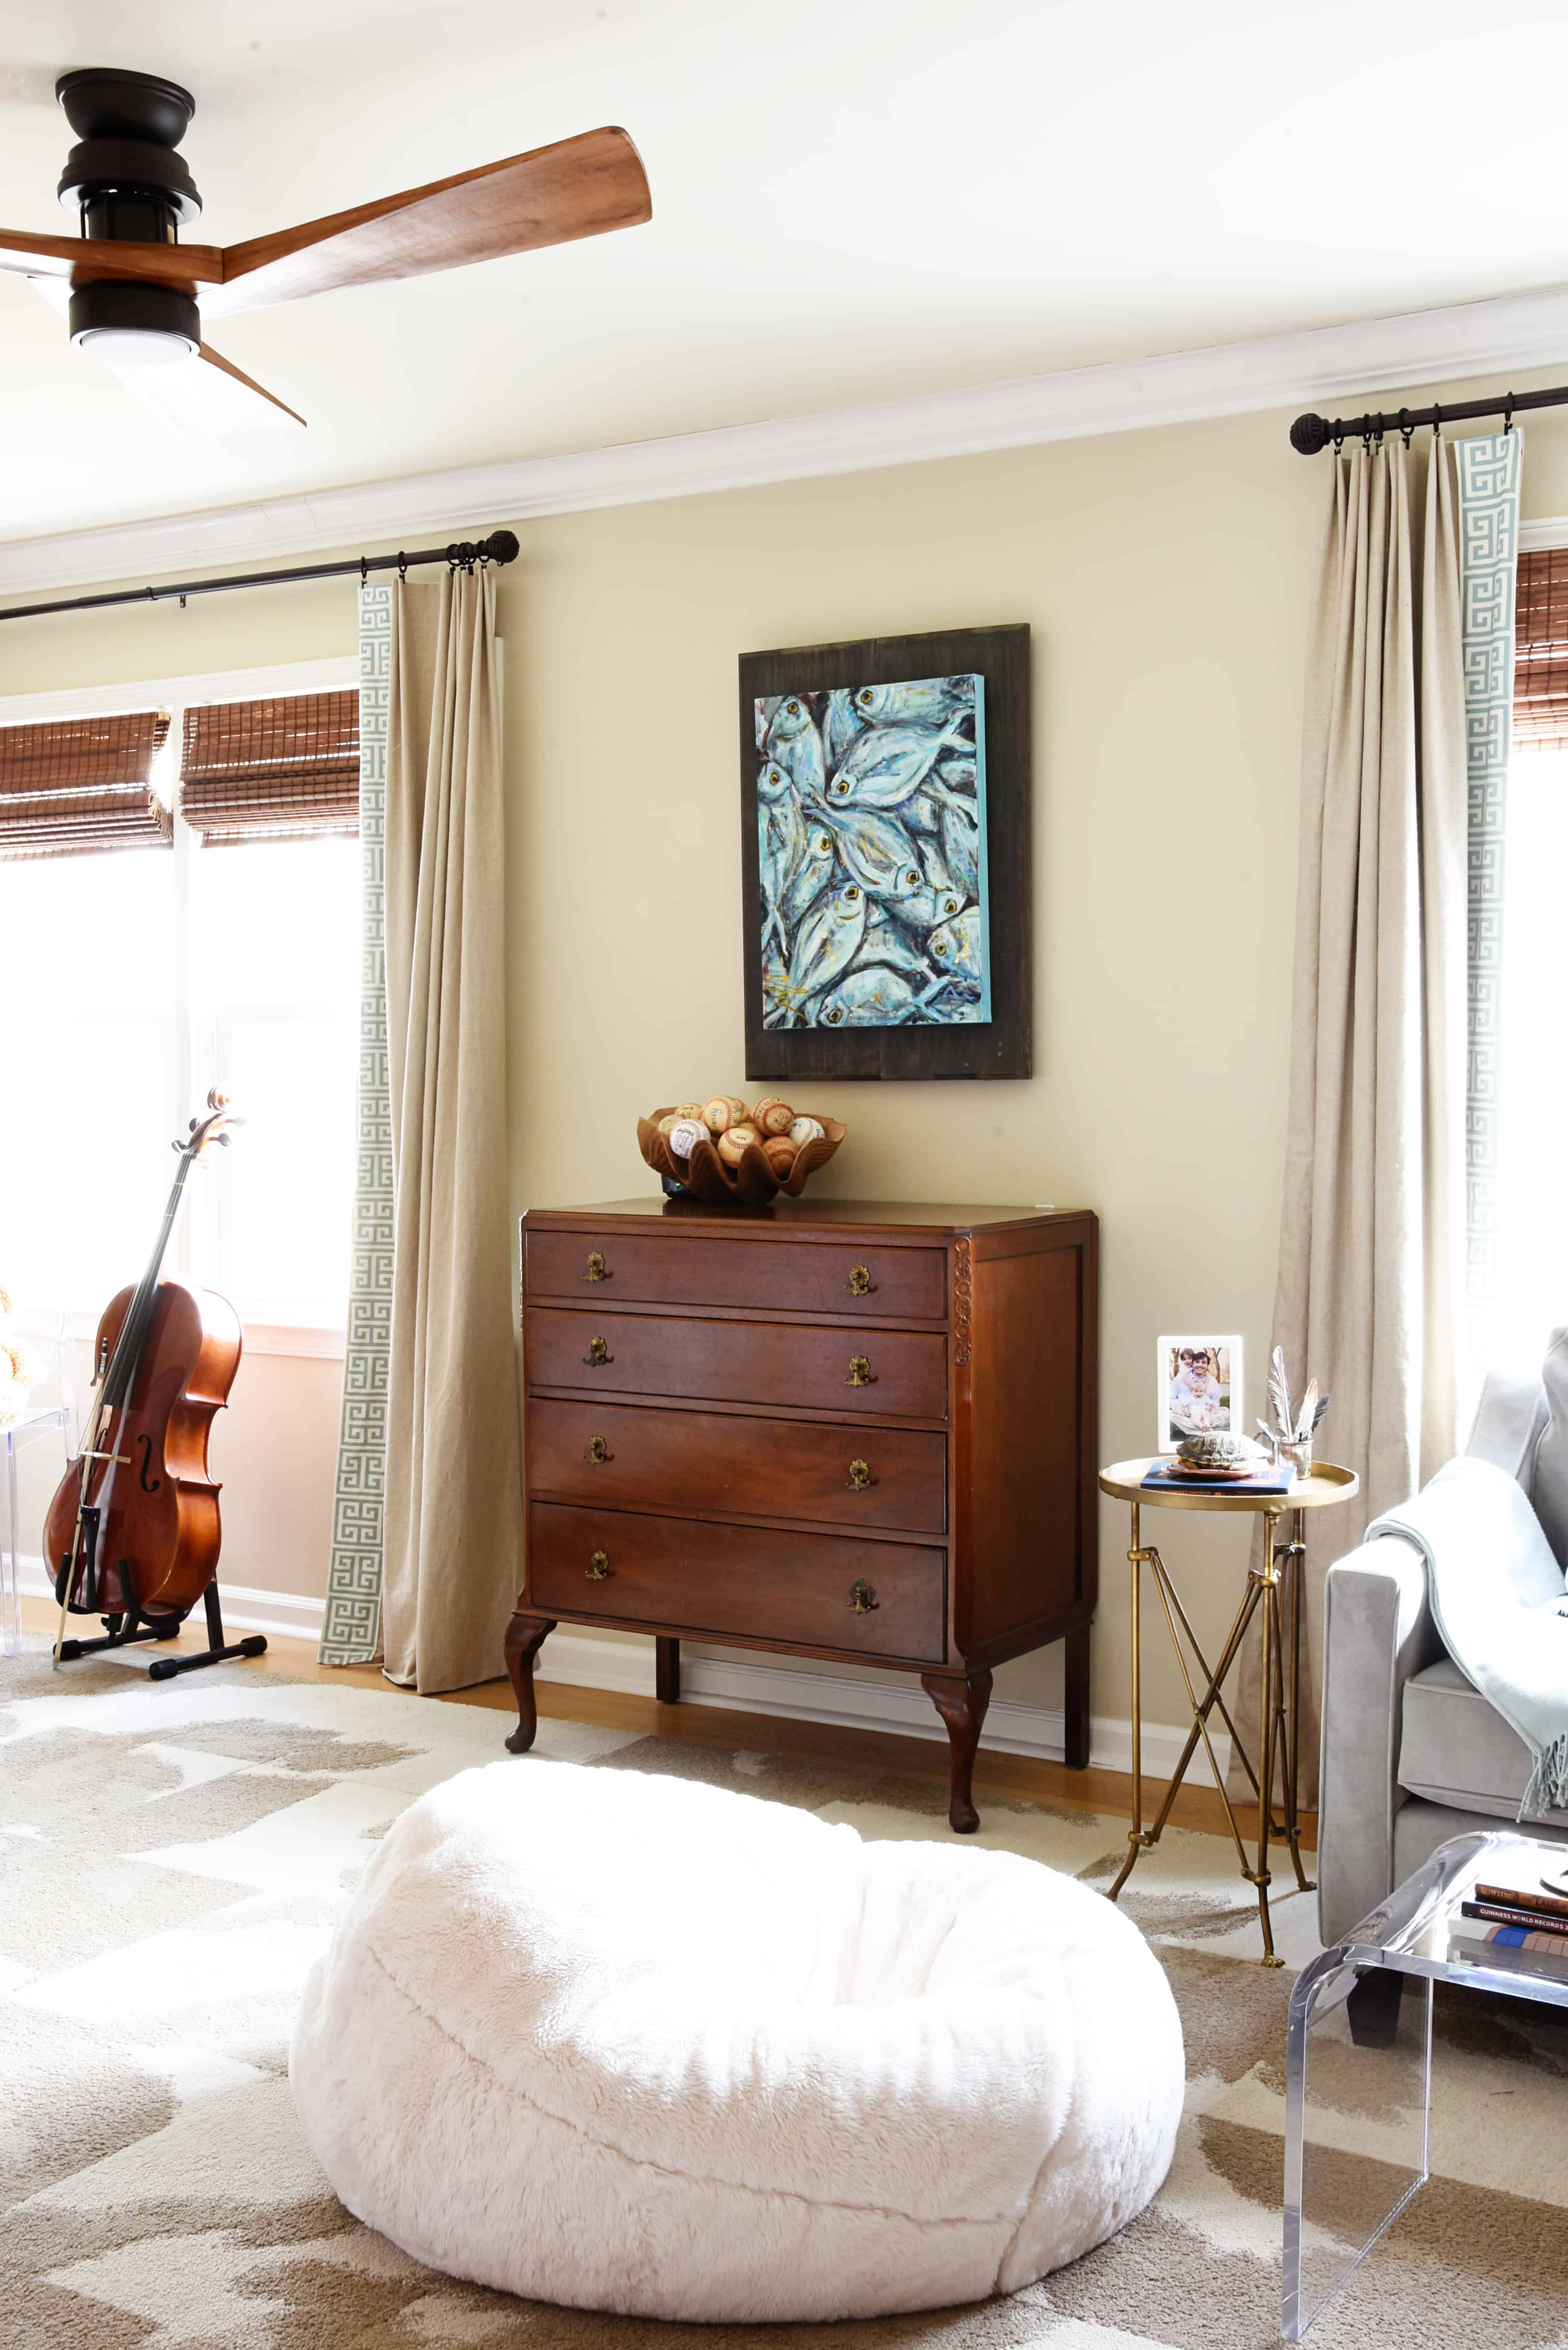 John Opted To Keep A Desk Space In His Room,